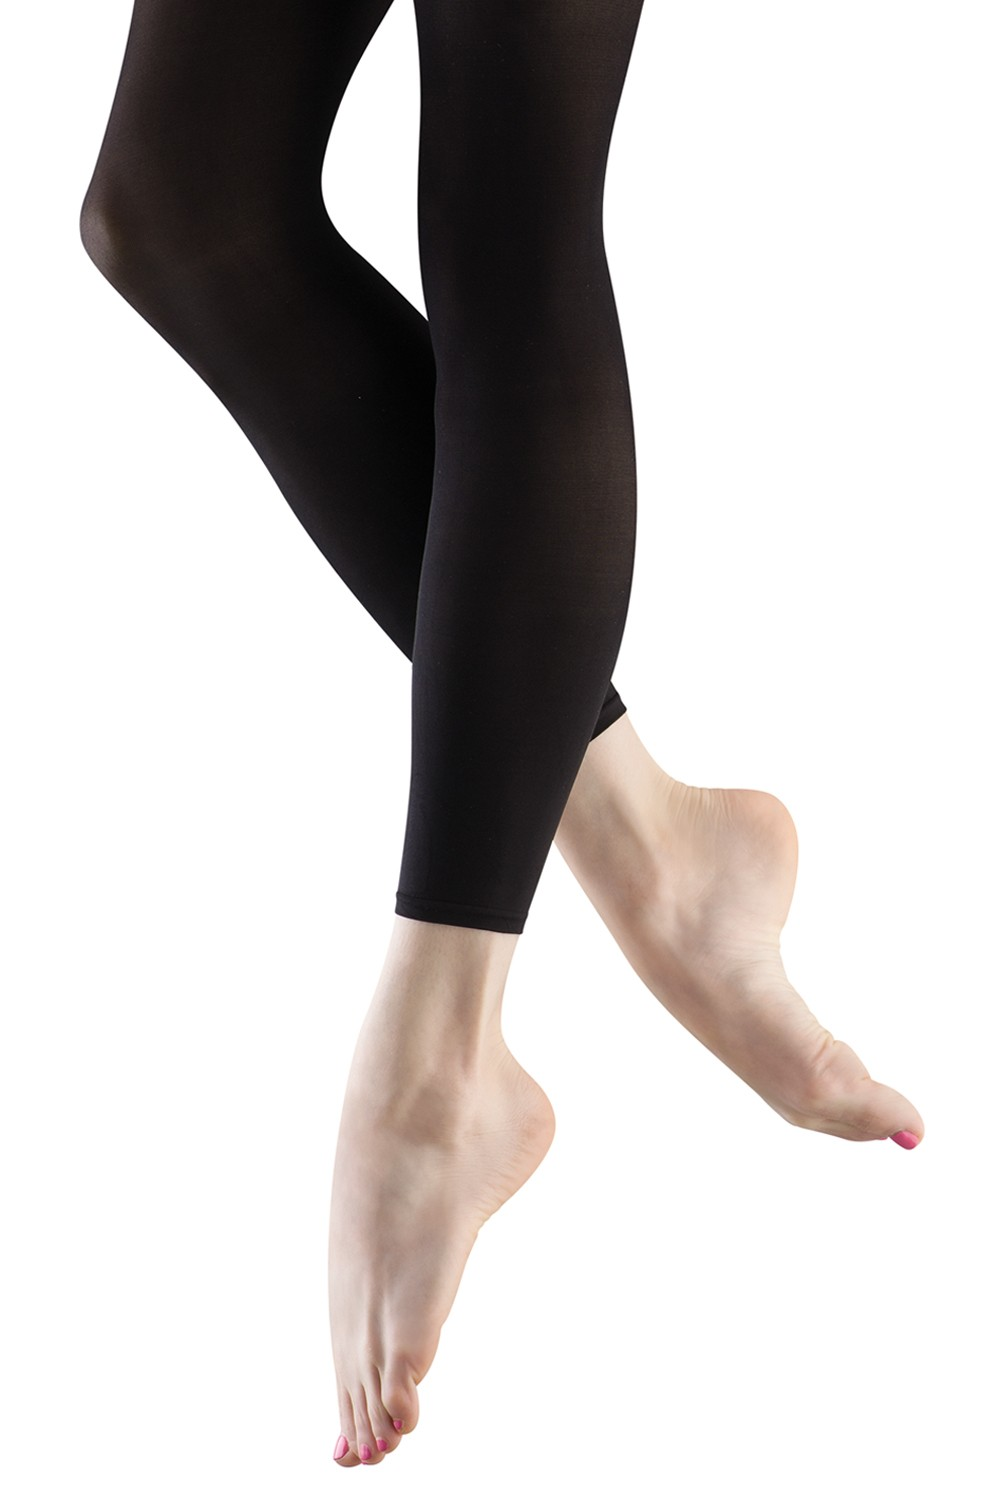 a007a26ea BLOCH® Women s Ballet   Dance Tights - BLOCH® US Store